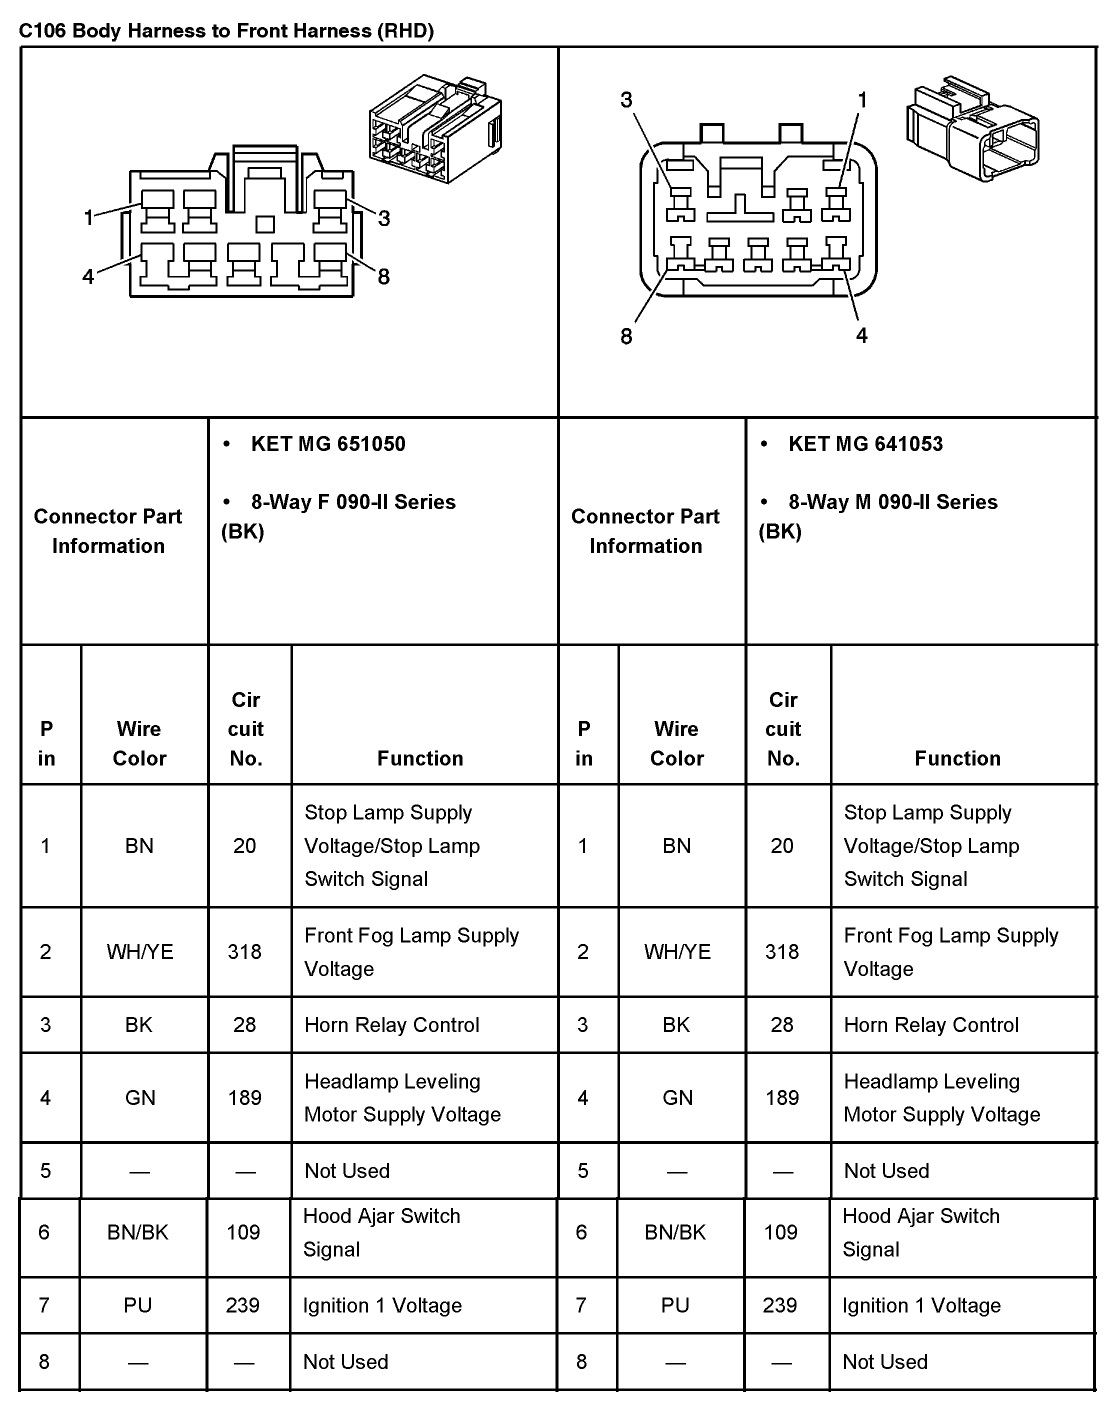 7331d1383704576 2005 aveo master connector list diagrams conn3 jpg 2008 chevy aveo fuse box diagram chevy aveo door lock diagram 2013 chevy cruze fuse box diagram at nearapp.co